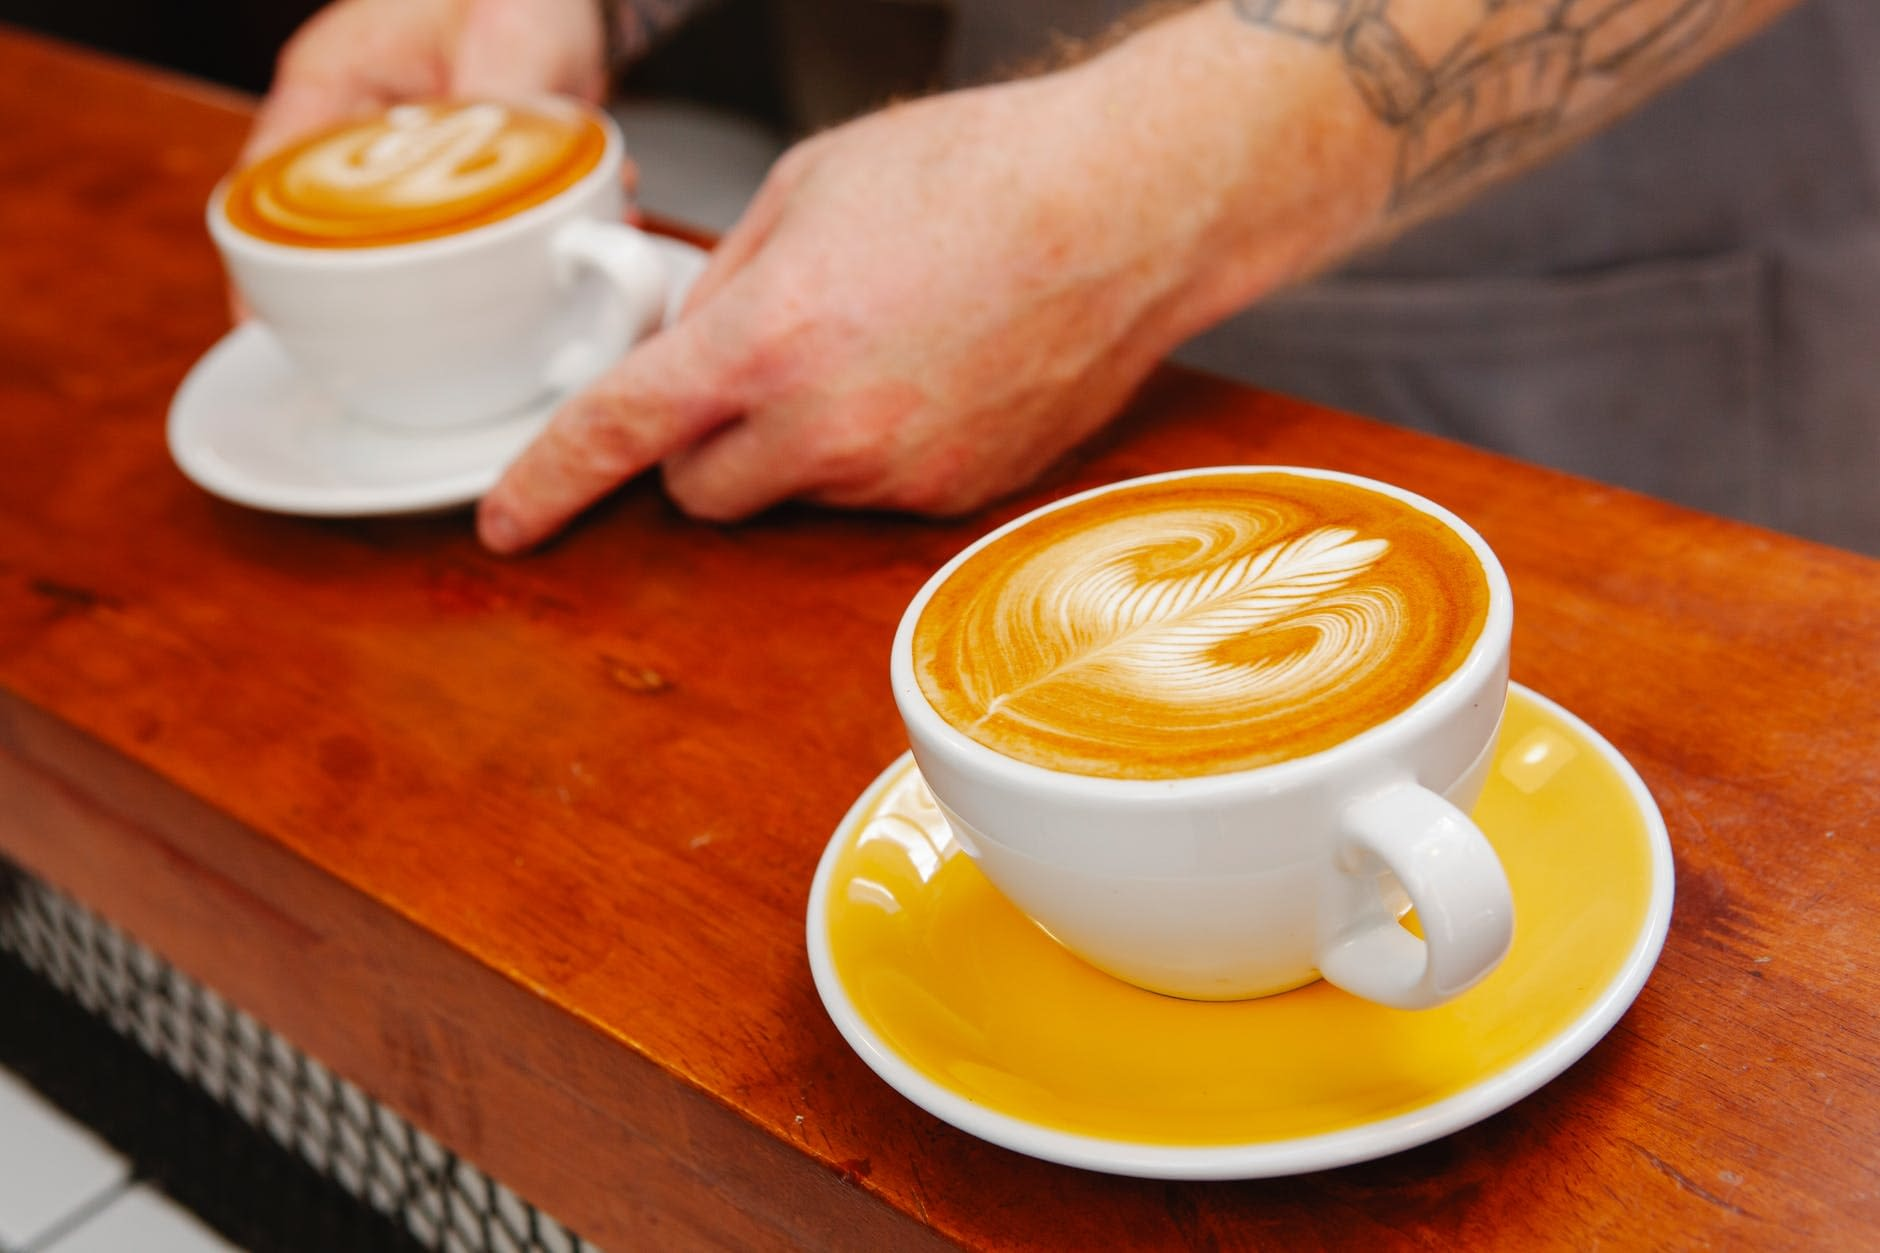 crop barista serving cups with delicious latte at counter